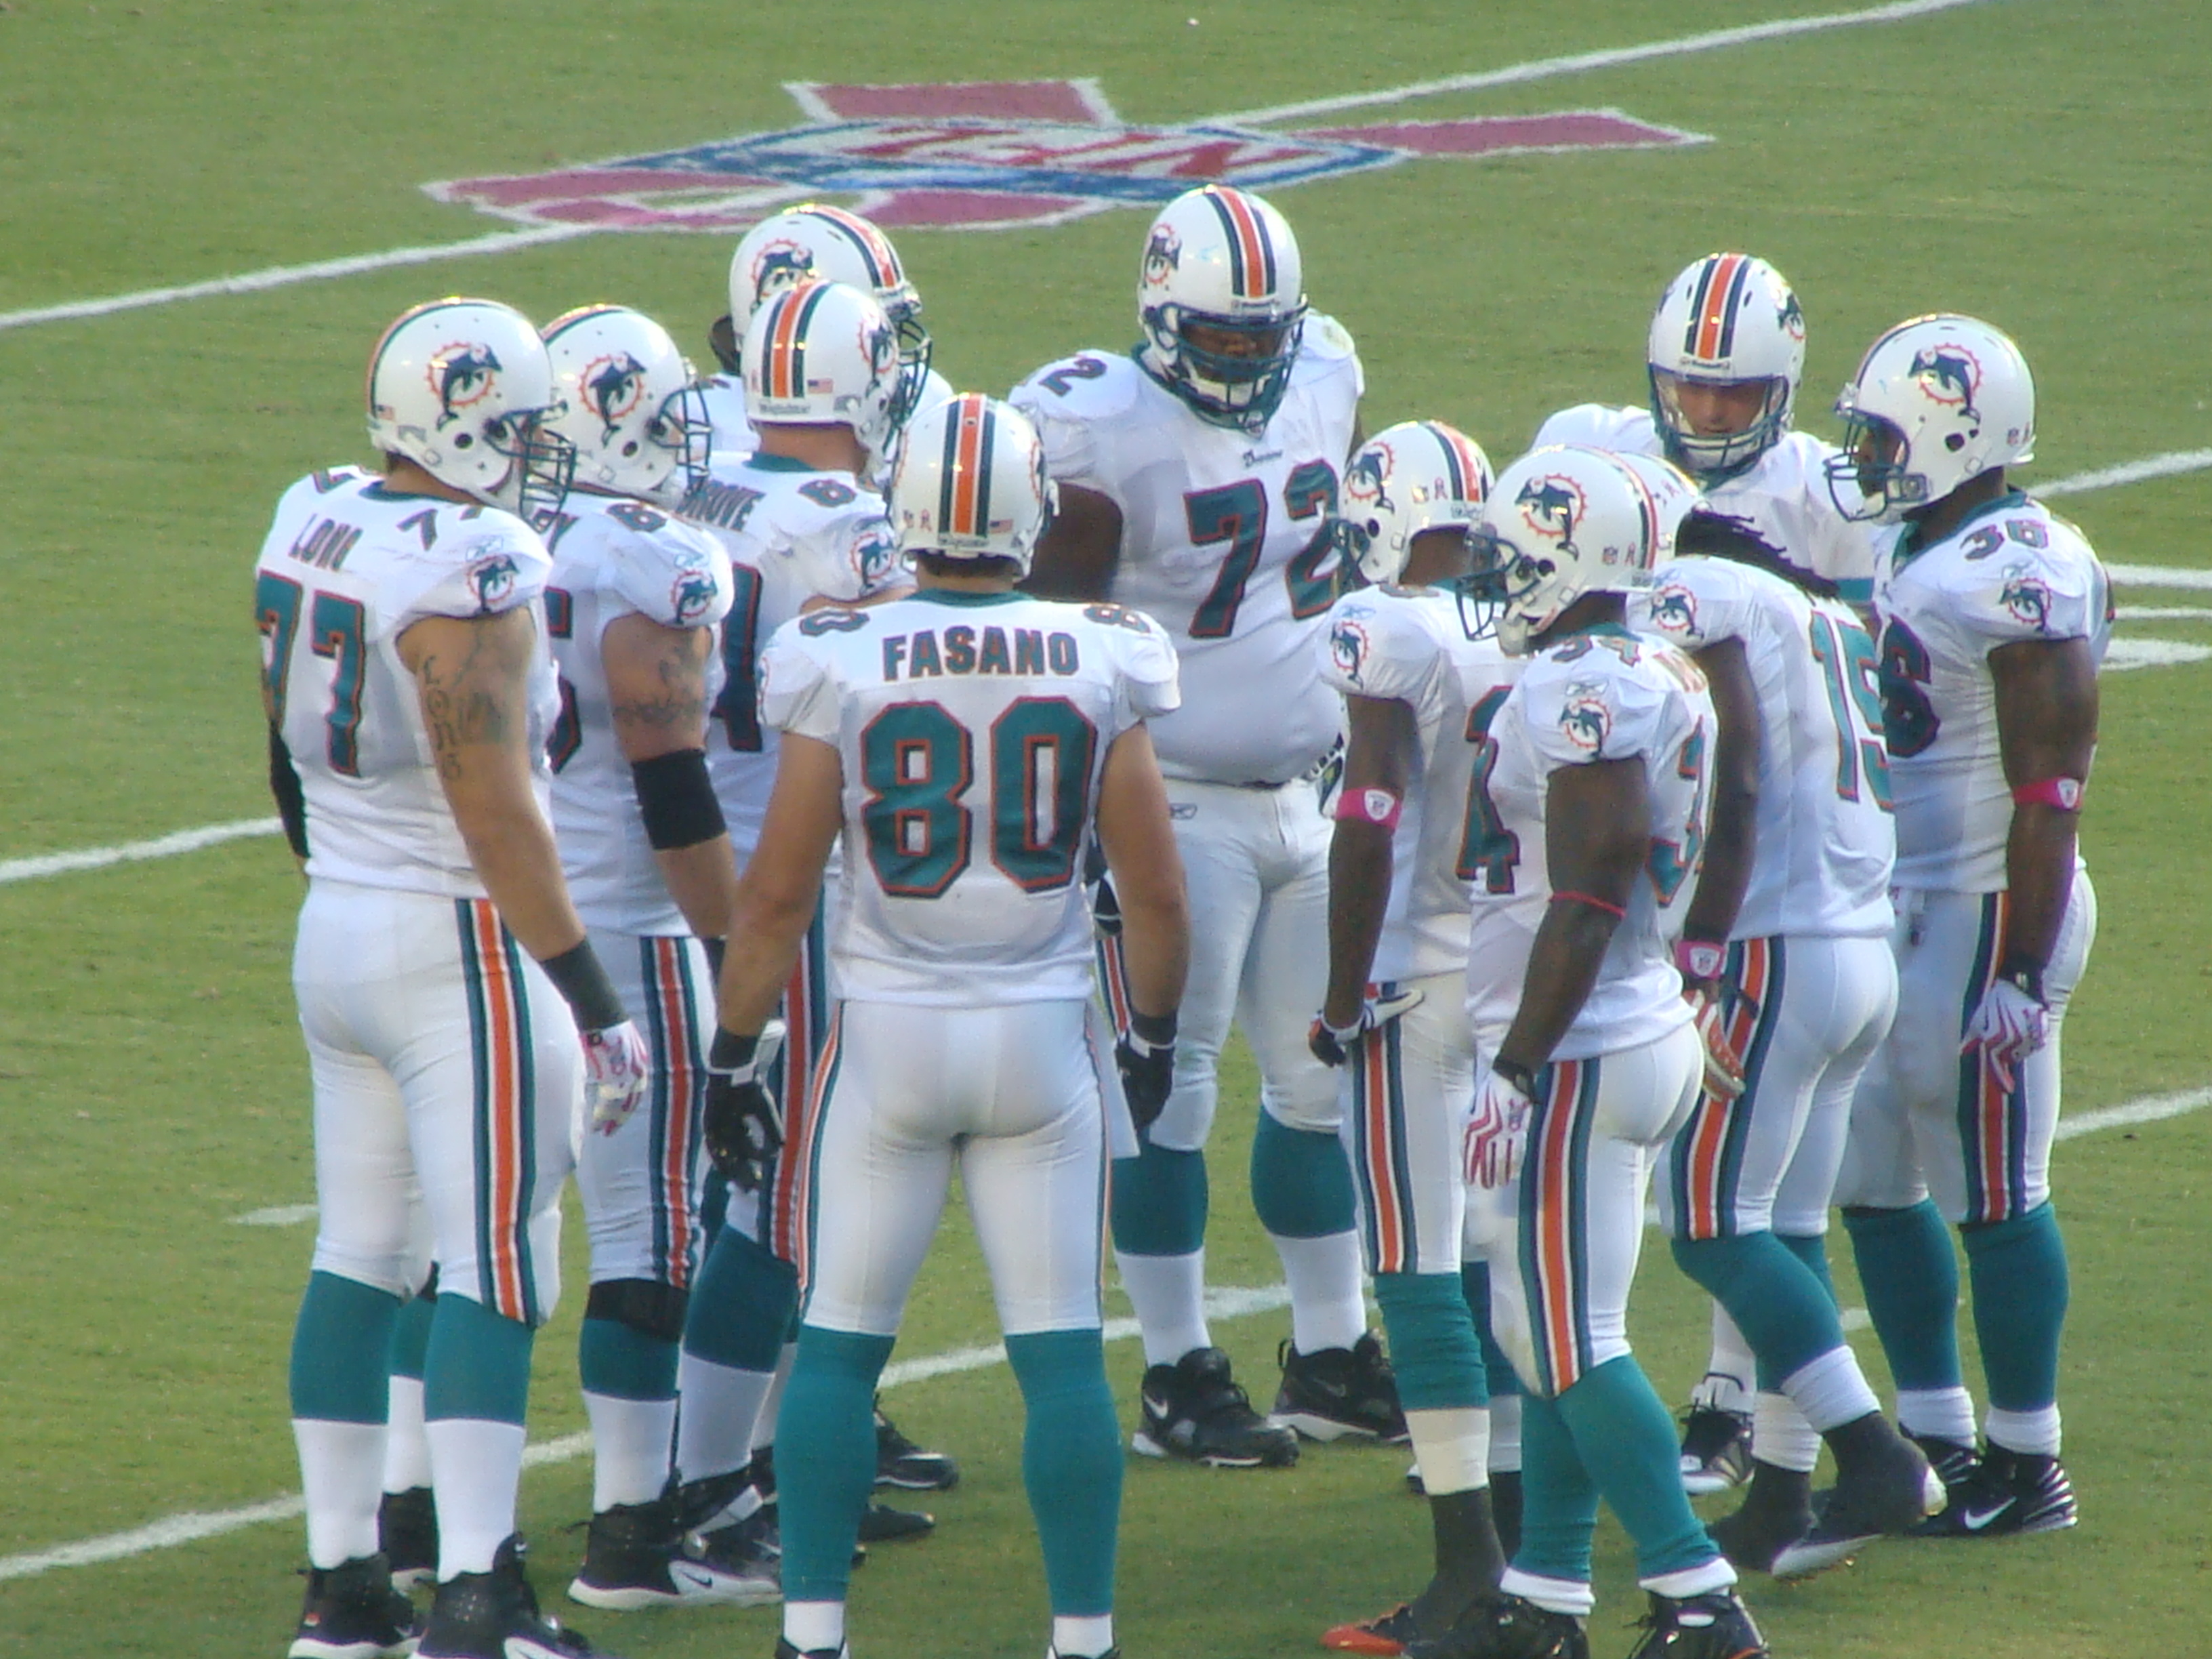 The Dolphins exuded confidence in the second quarter